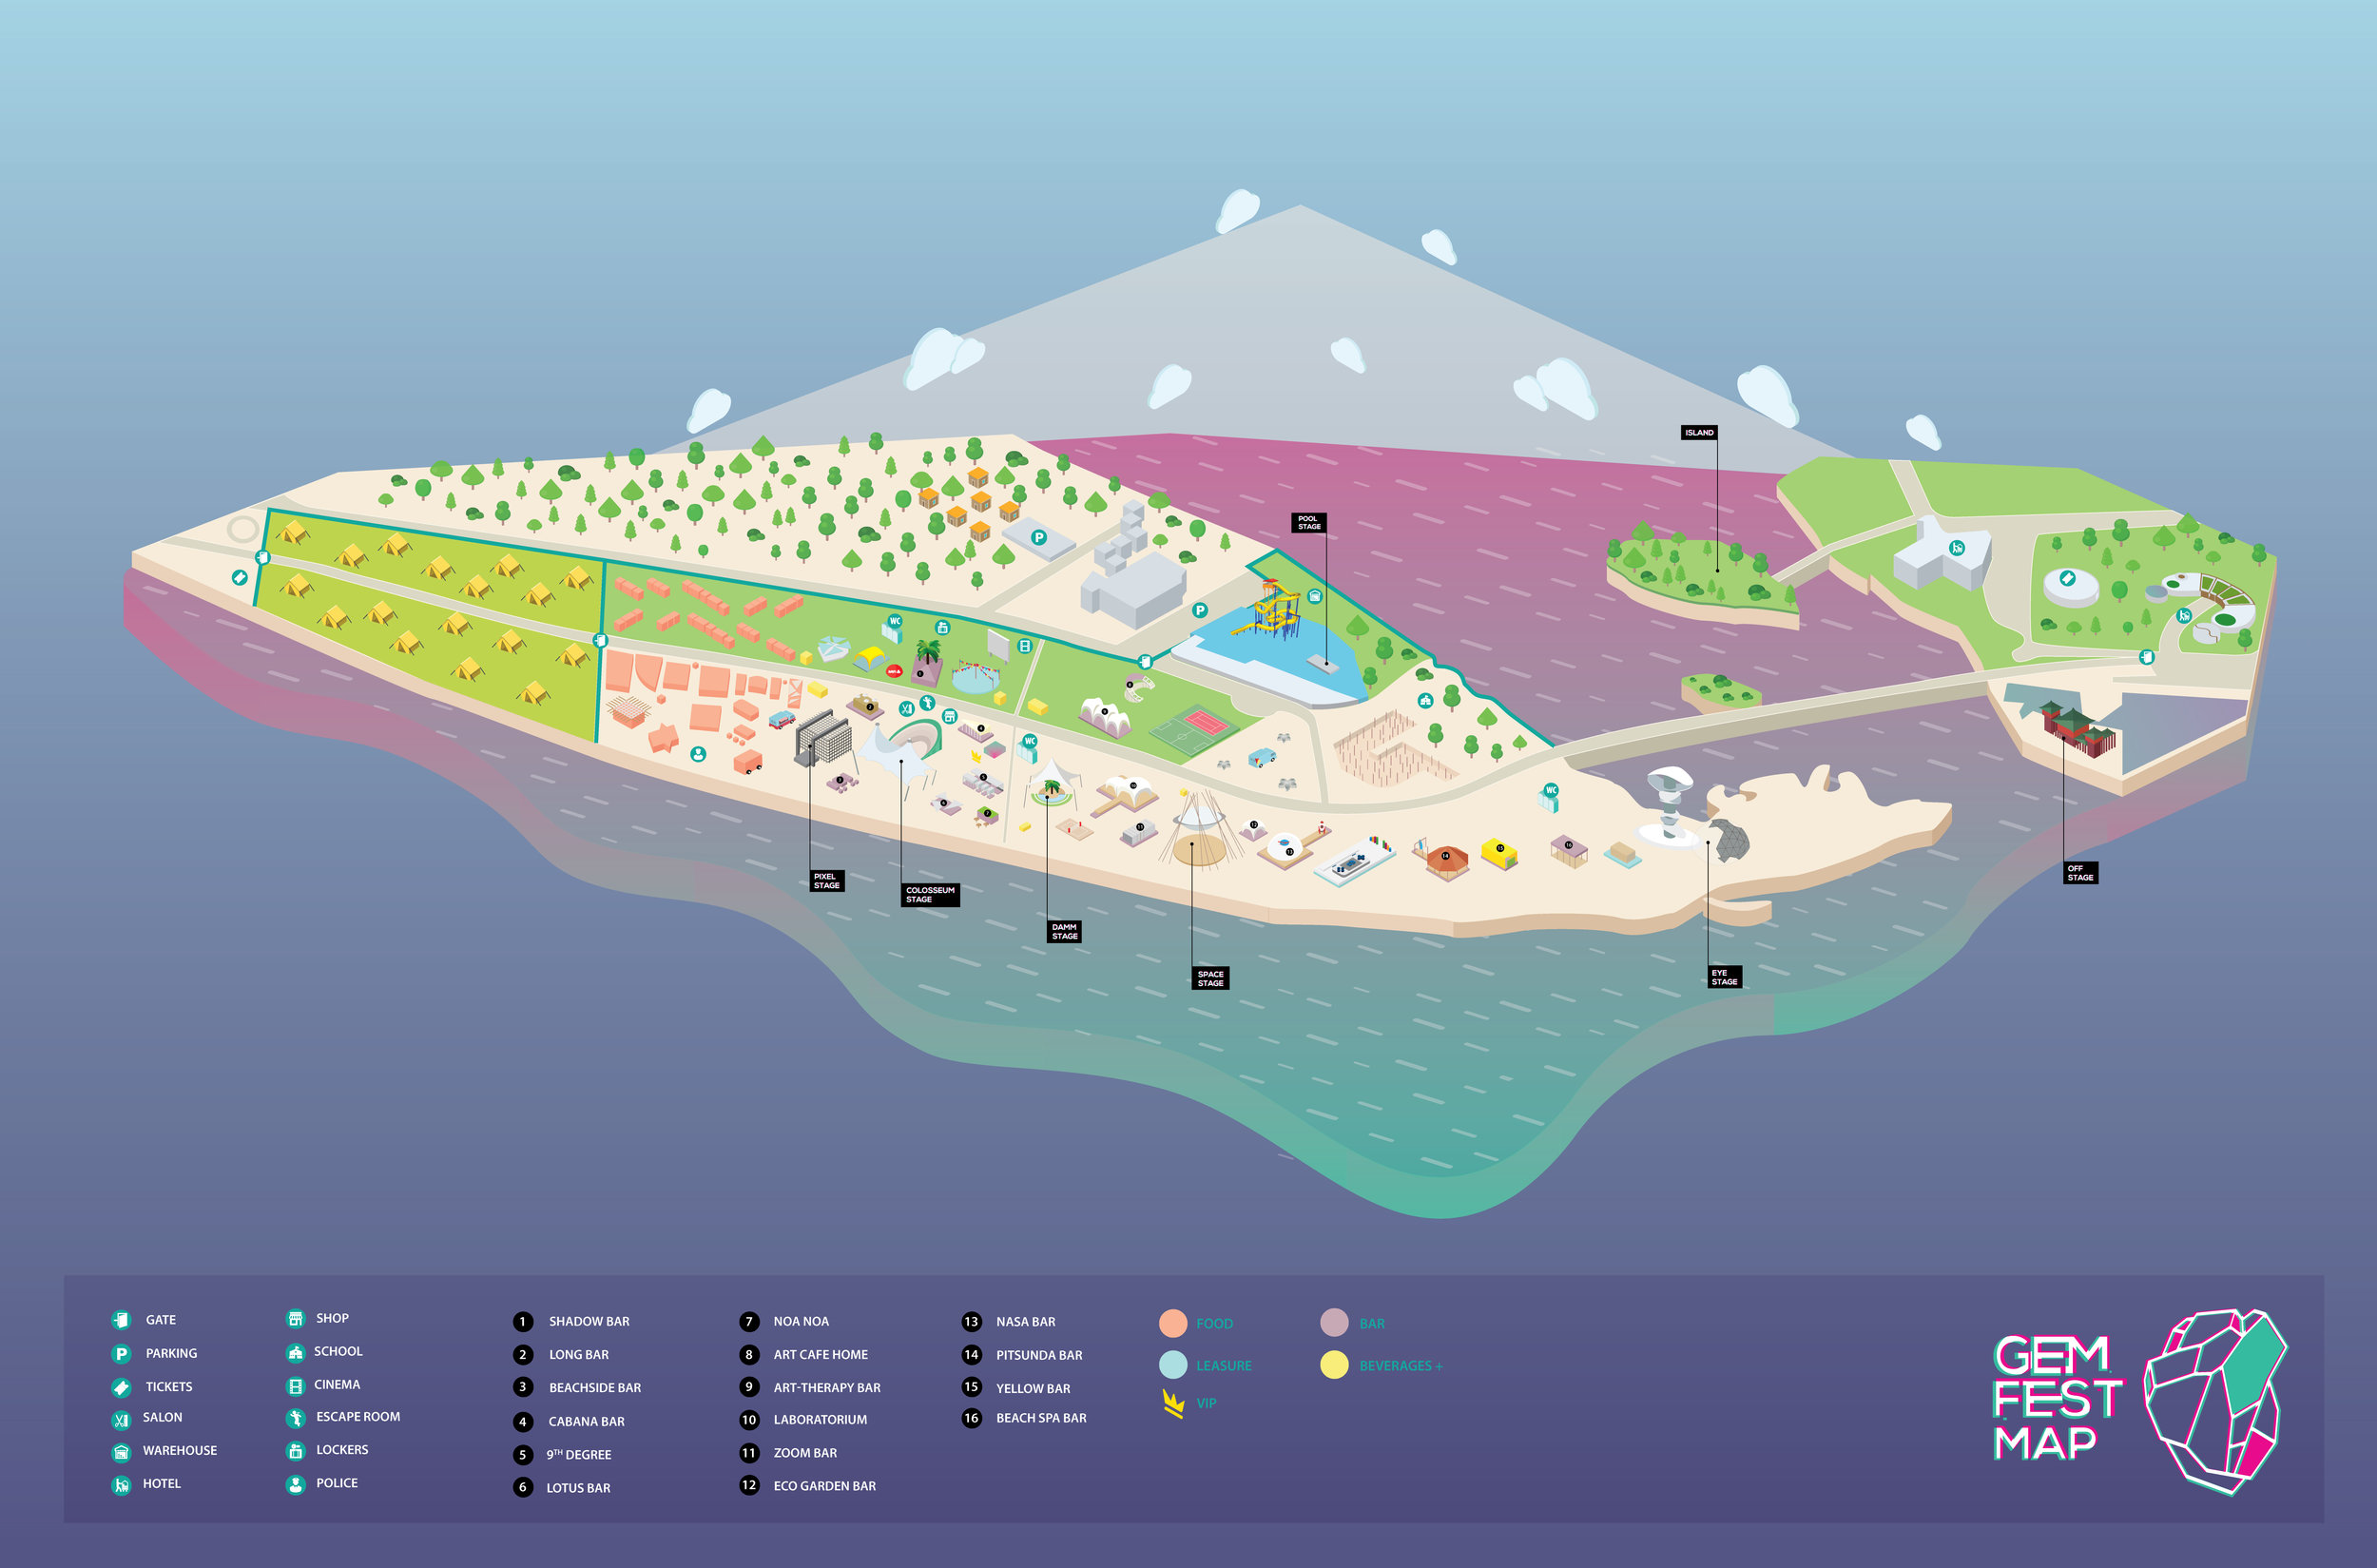 GEM-FEST---Isometric-Map-1---Final.jpg